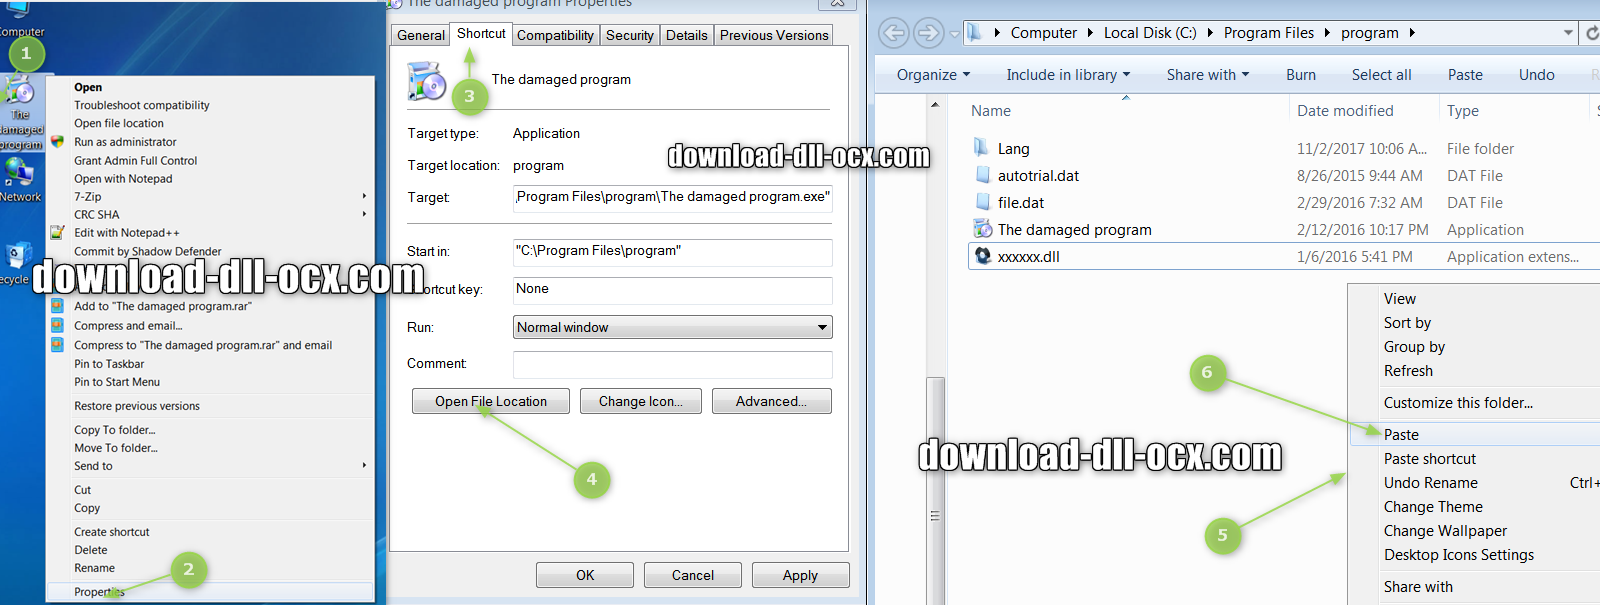 how to install shimgvw.dll file? for fix missing